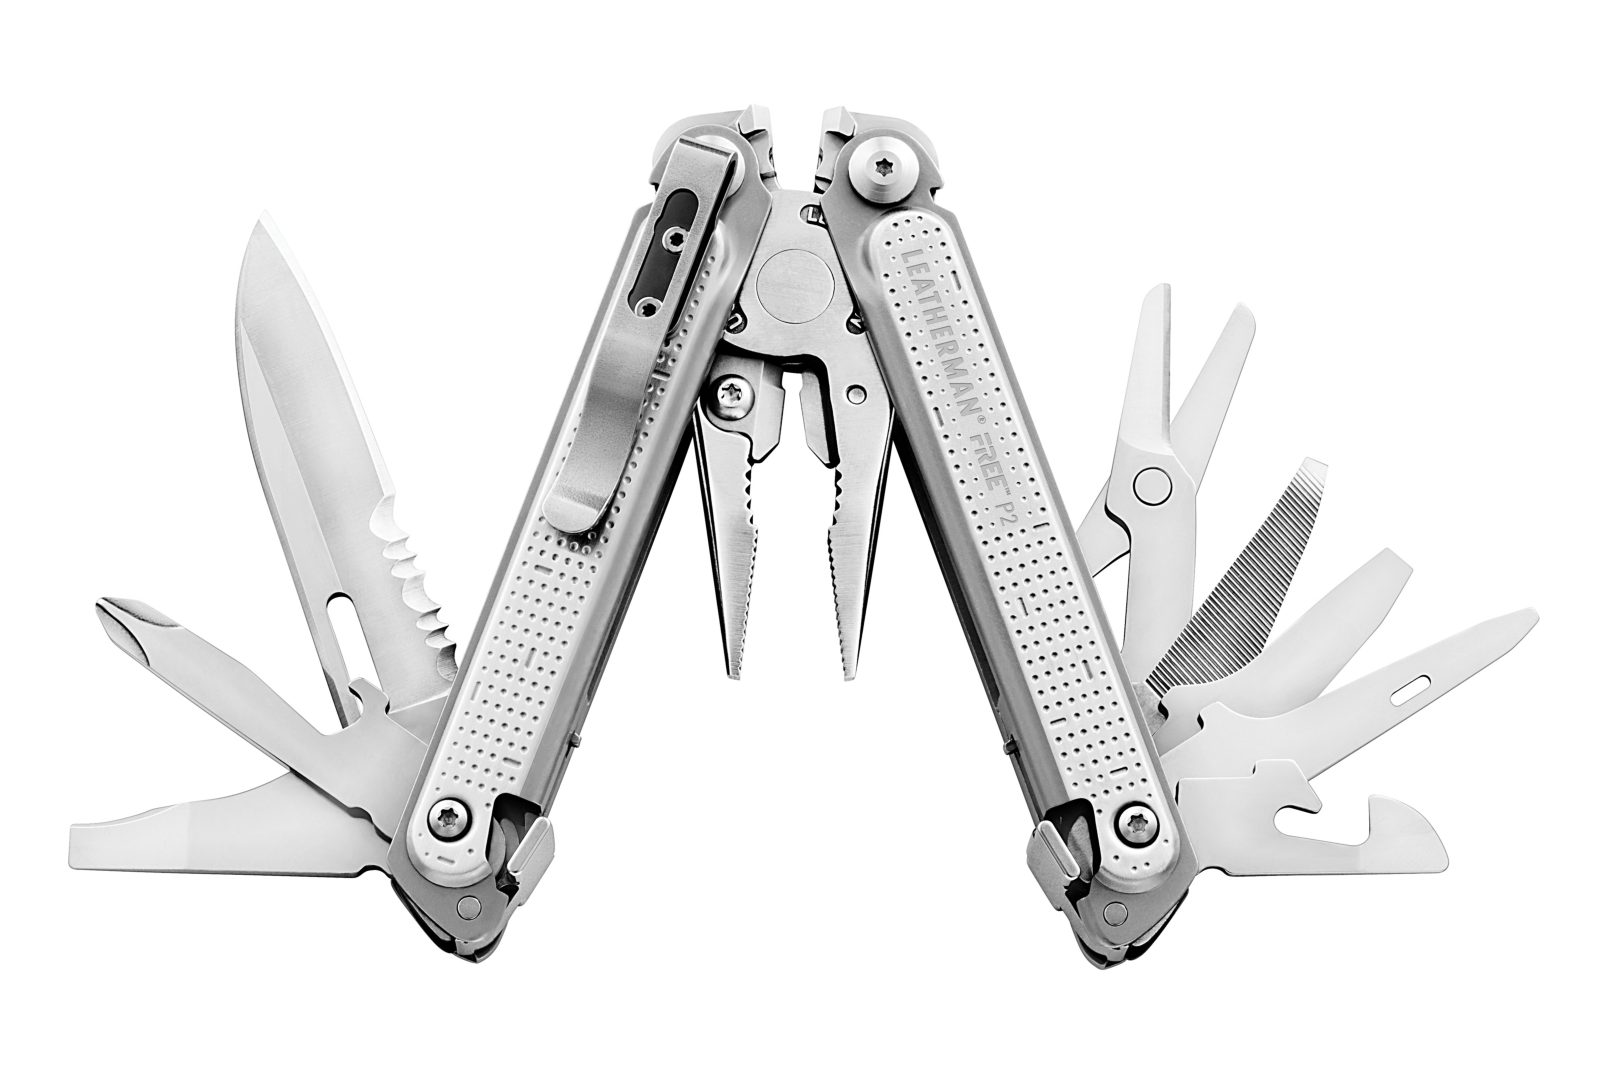 Leatherman FREE - P2 offen.